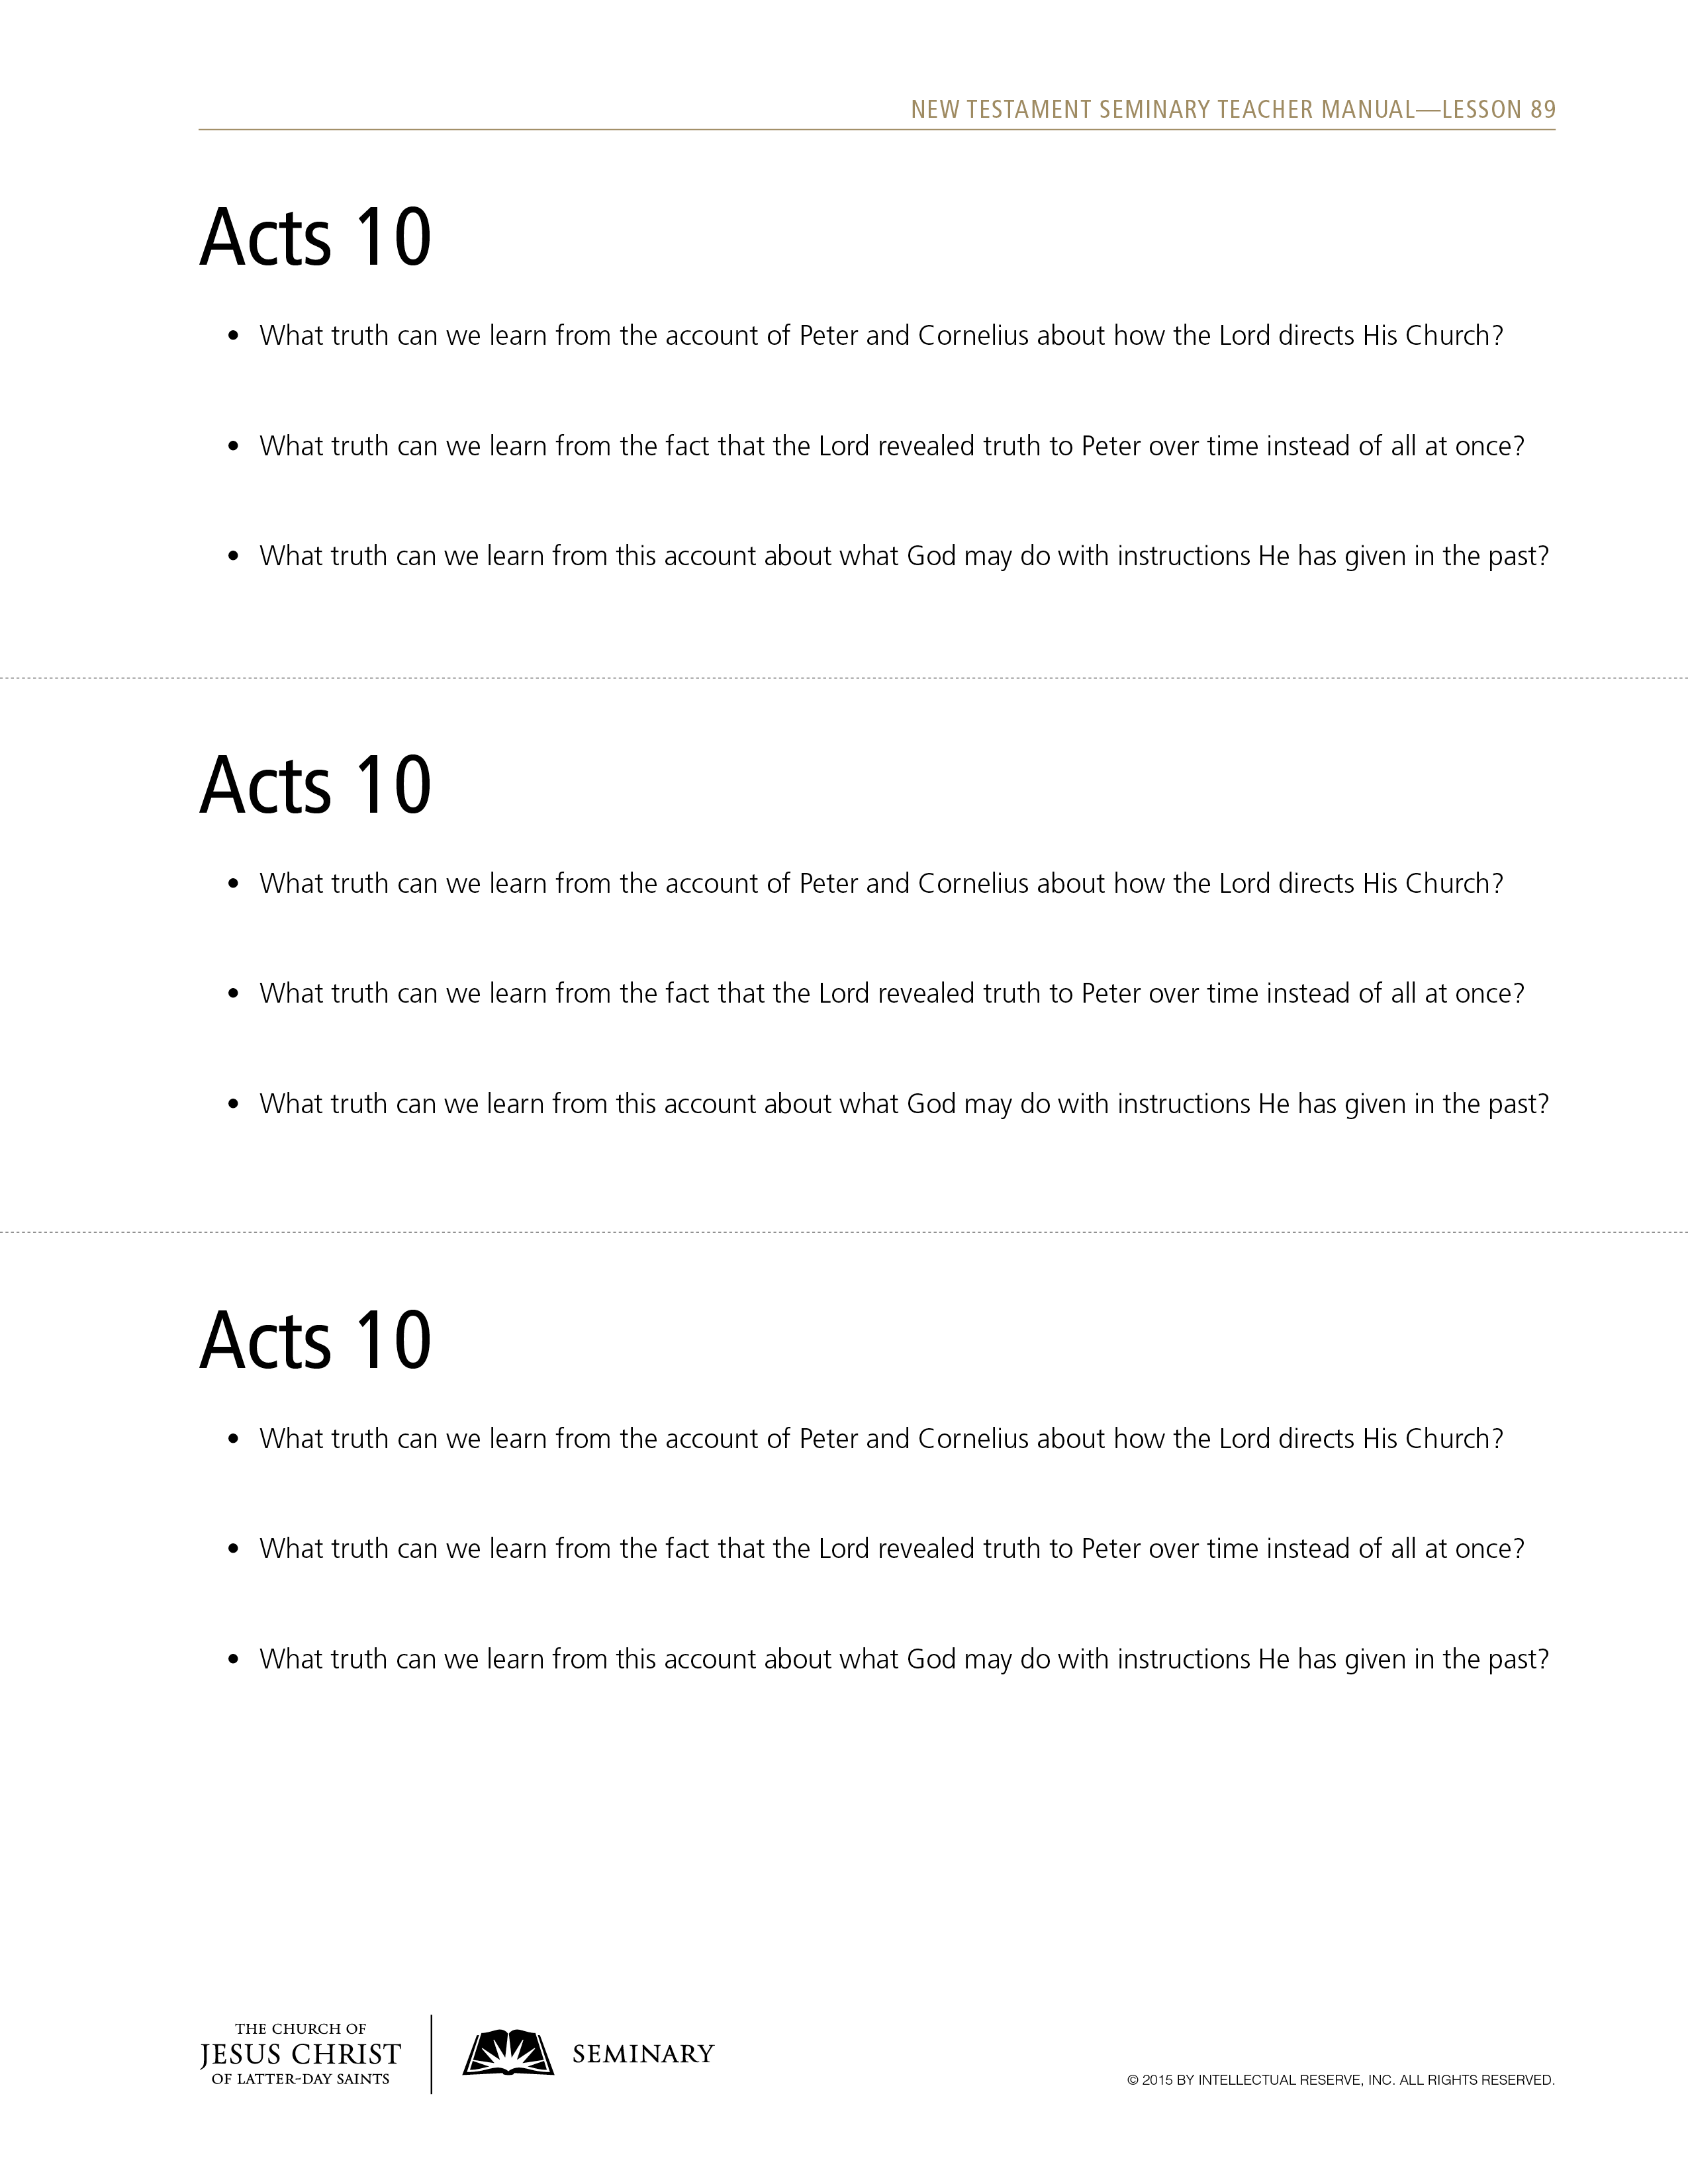 Lesson 89: Acts 10–11